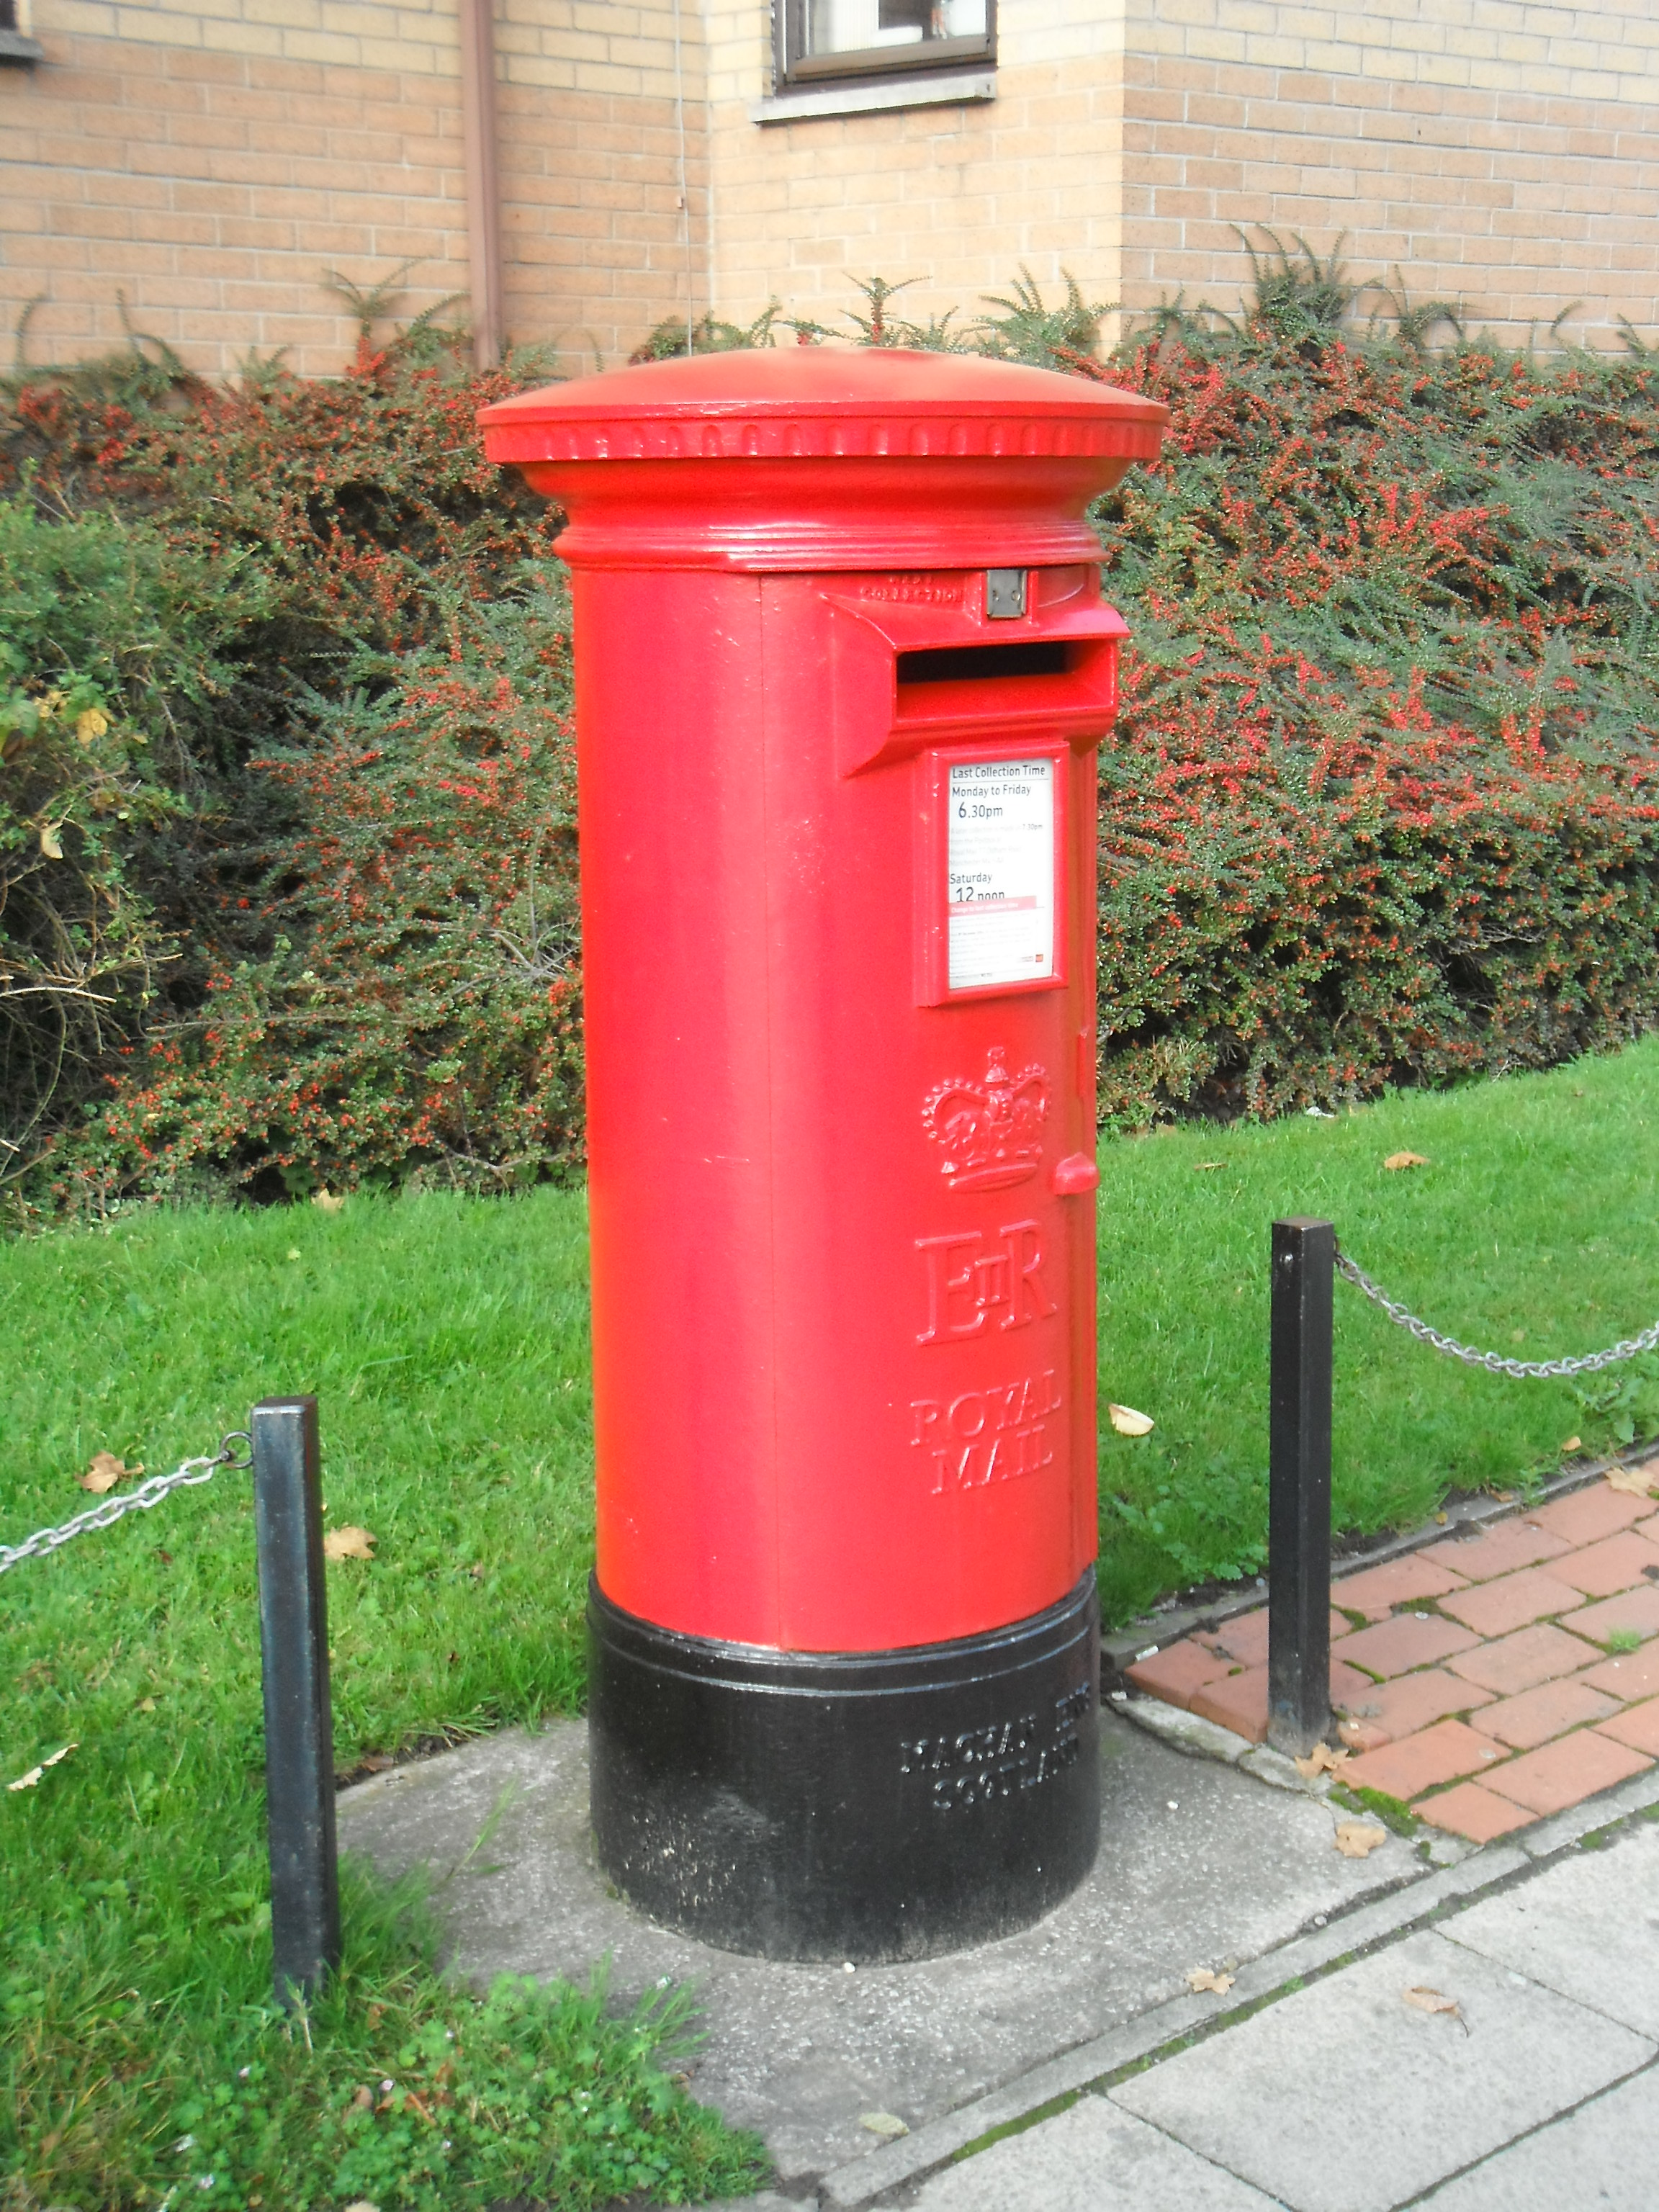 Photo taken by me – Post Box